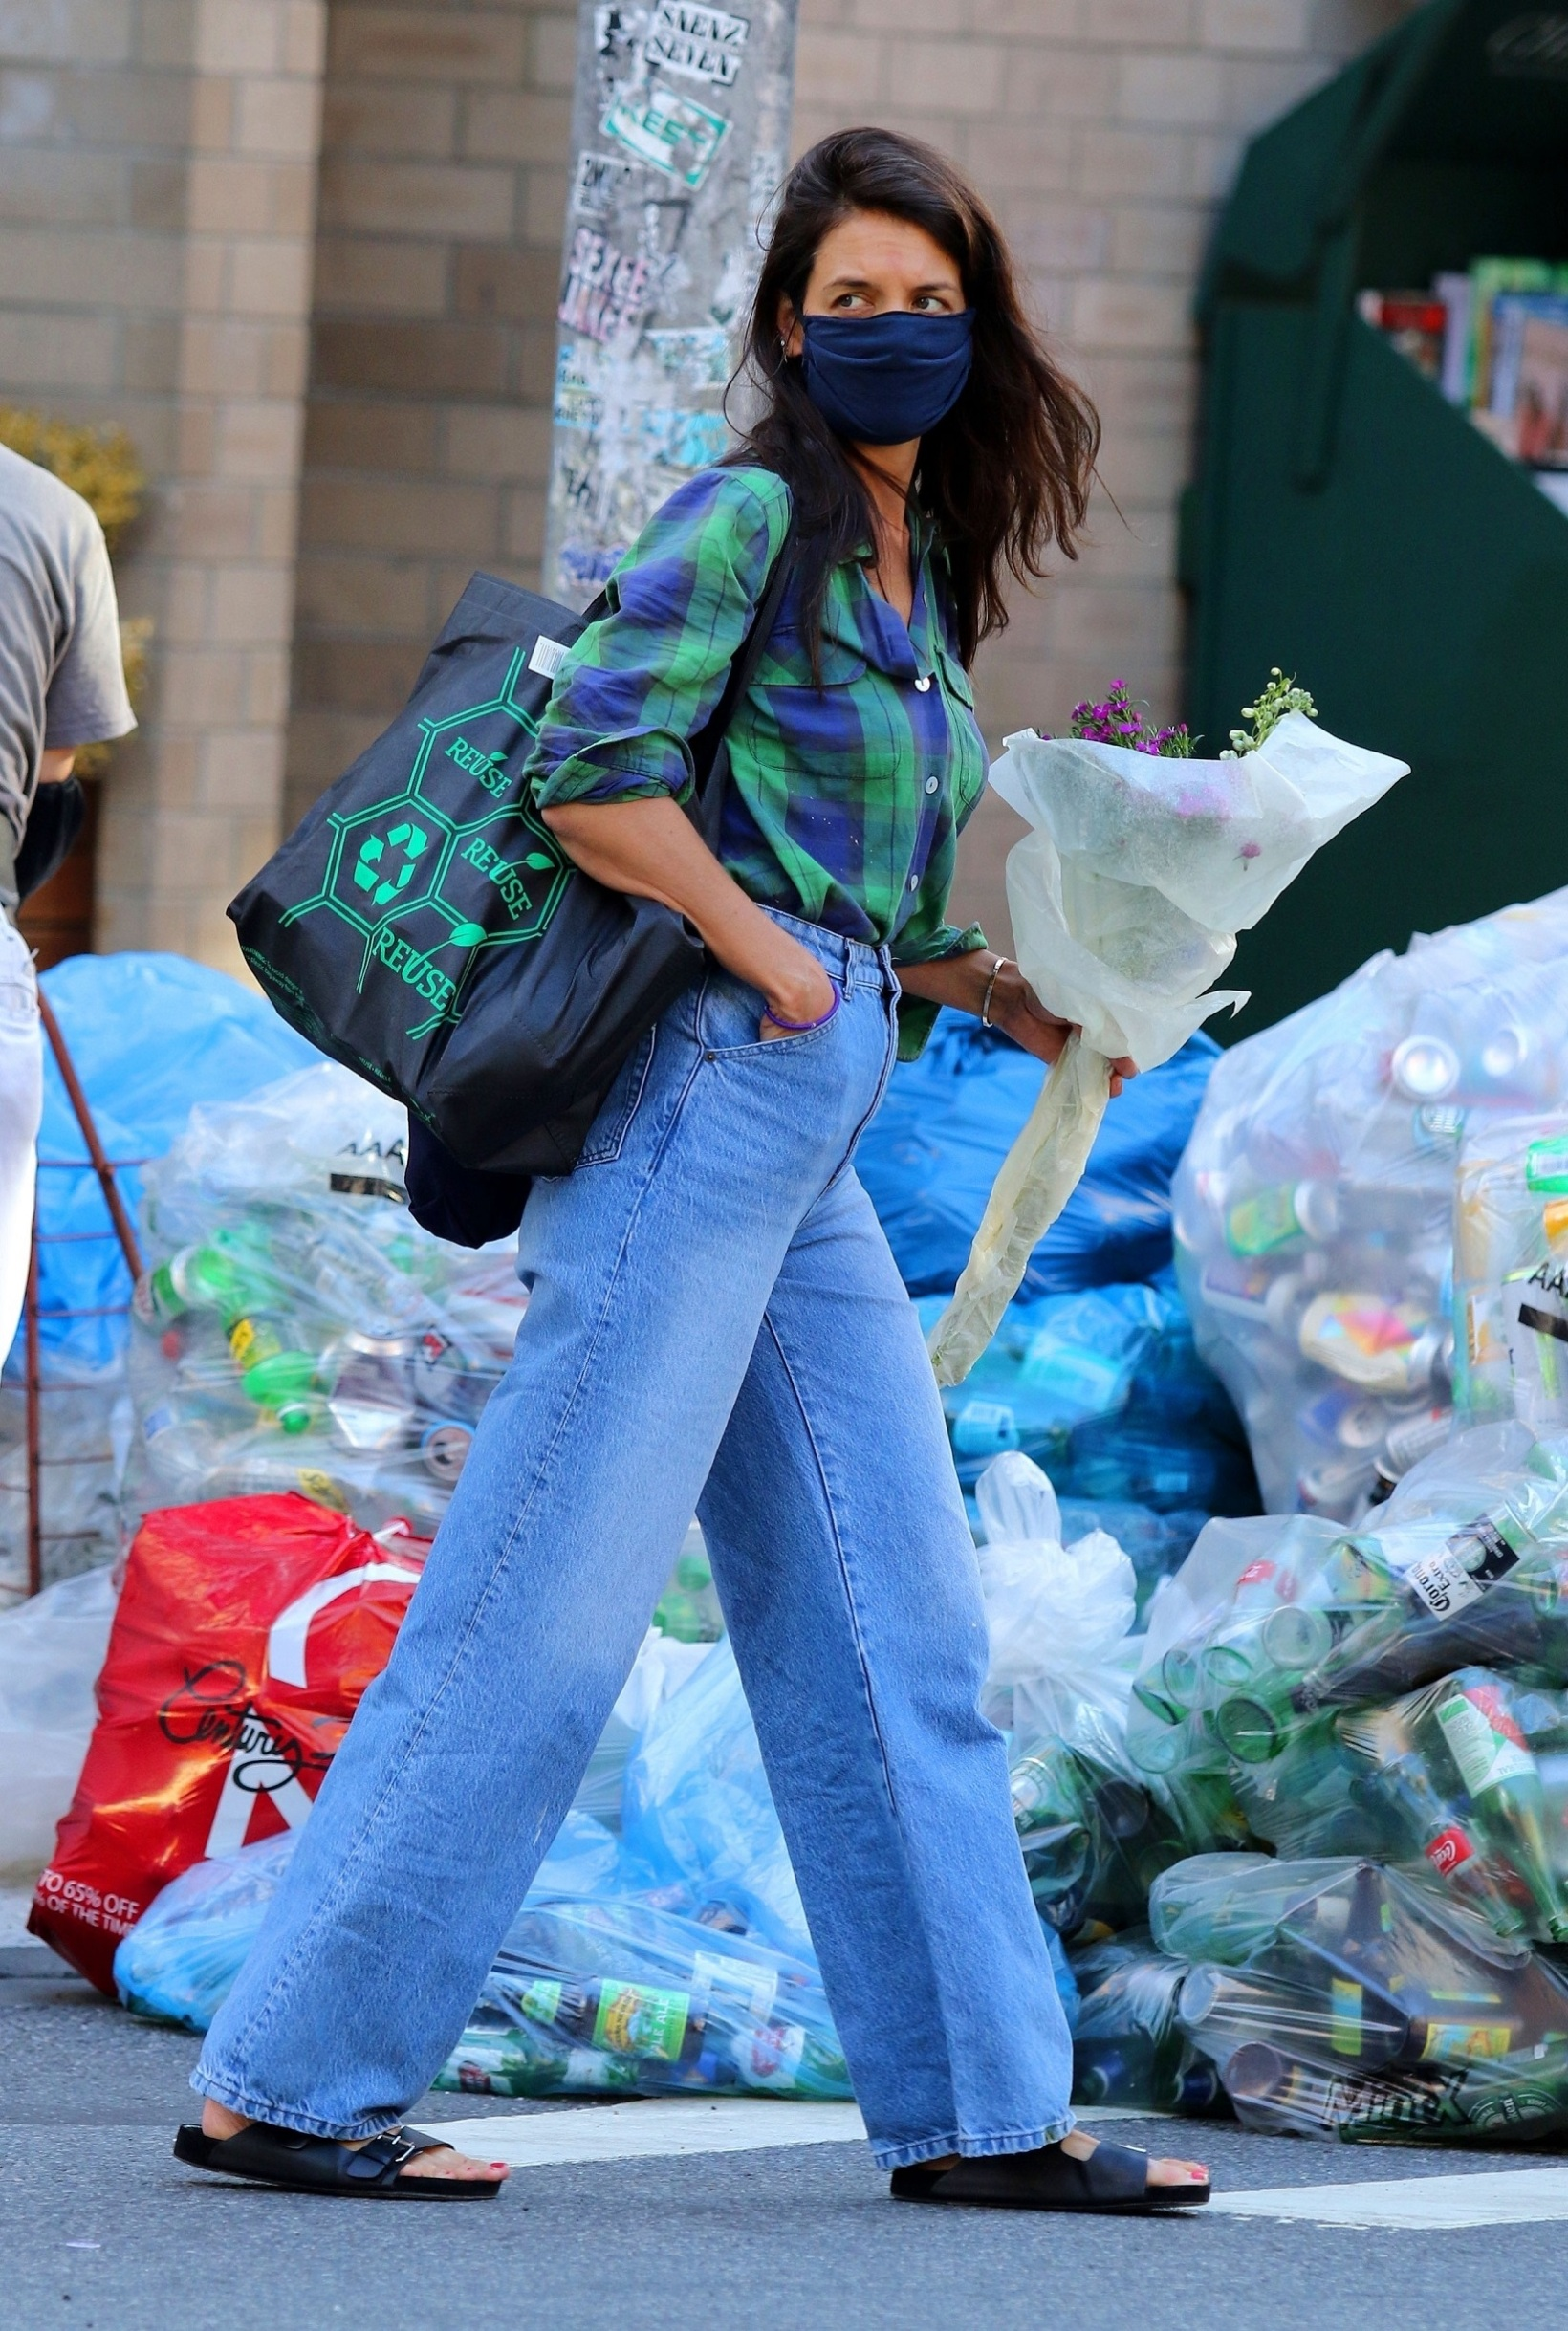 New York City, NY  - Katie Holmes is seen carrying a bouquet of flowers and later shops at a Downtown Manhattan supermarket.  BACKGRID USA 18 AUGUST 2020,Image: 553578087, License: Rights-managed, Restrictions: , Model Release: no, Credit line: BrosNYC / BACKGRID / Backgrid USA / Profimedia